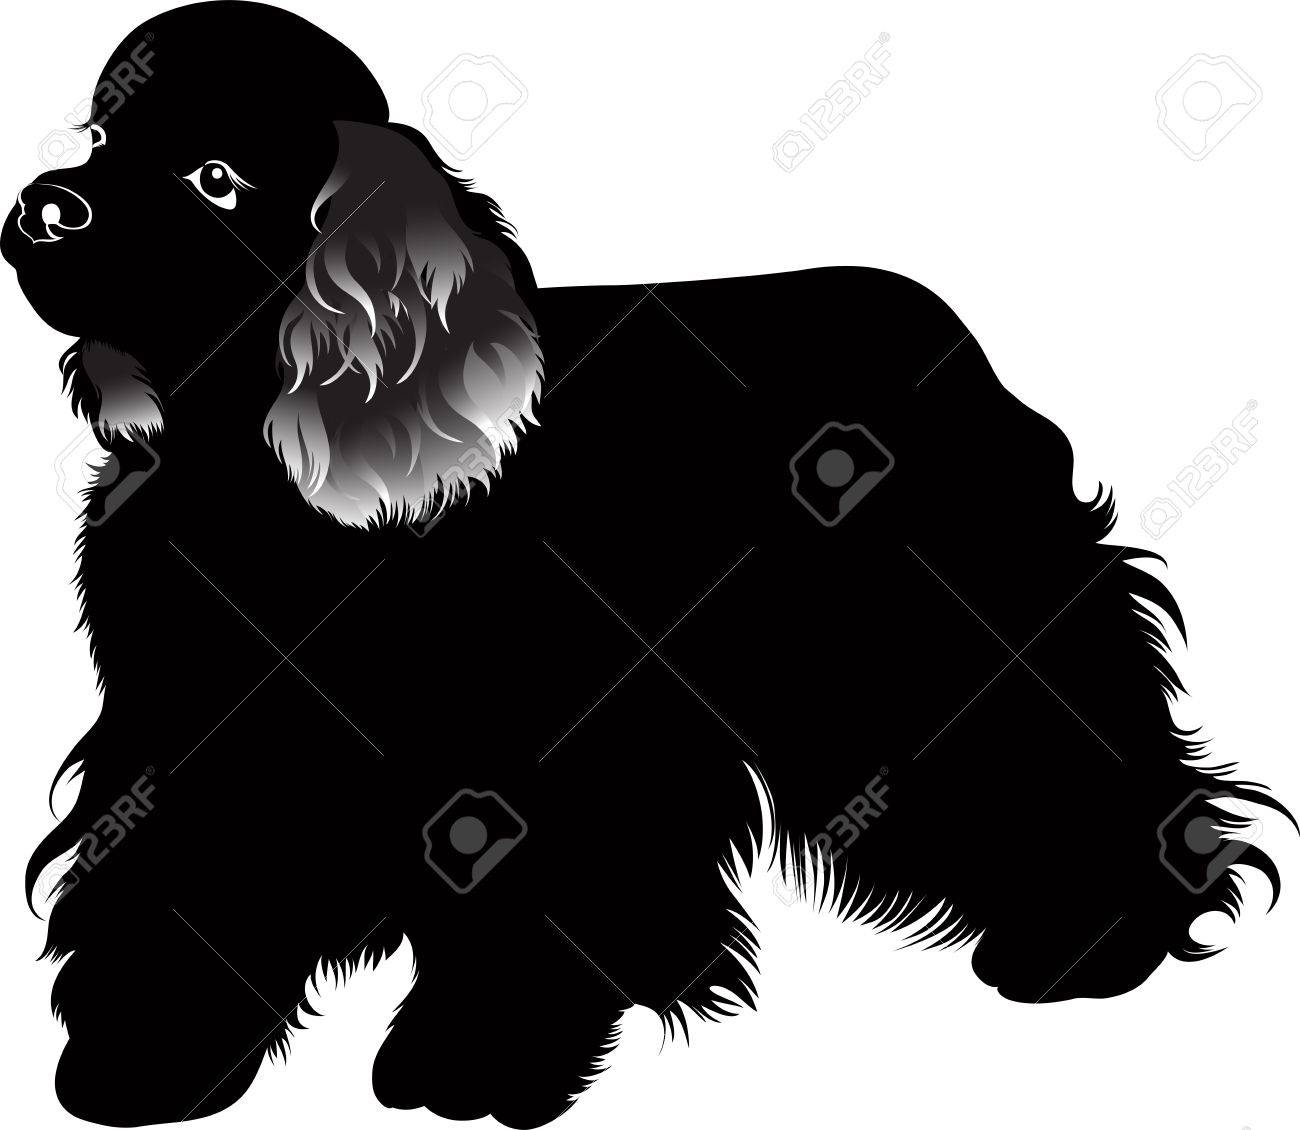 Cocker Spaniel Dog Vector Isolated On White Background Royalty ...